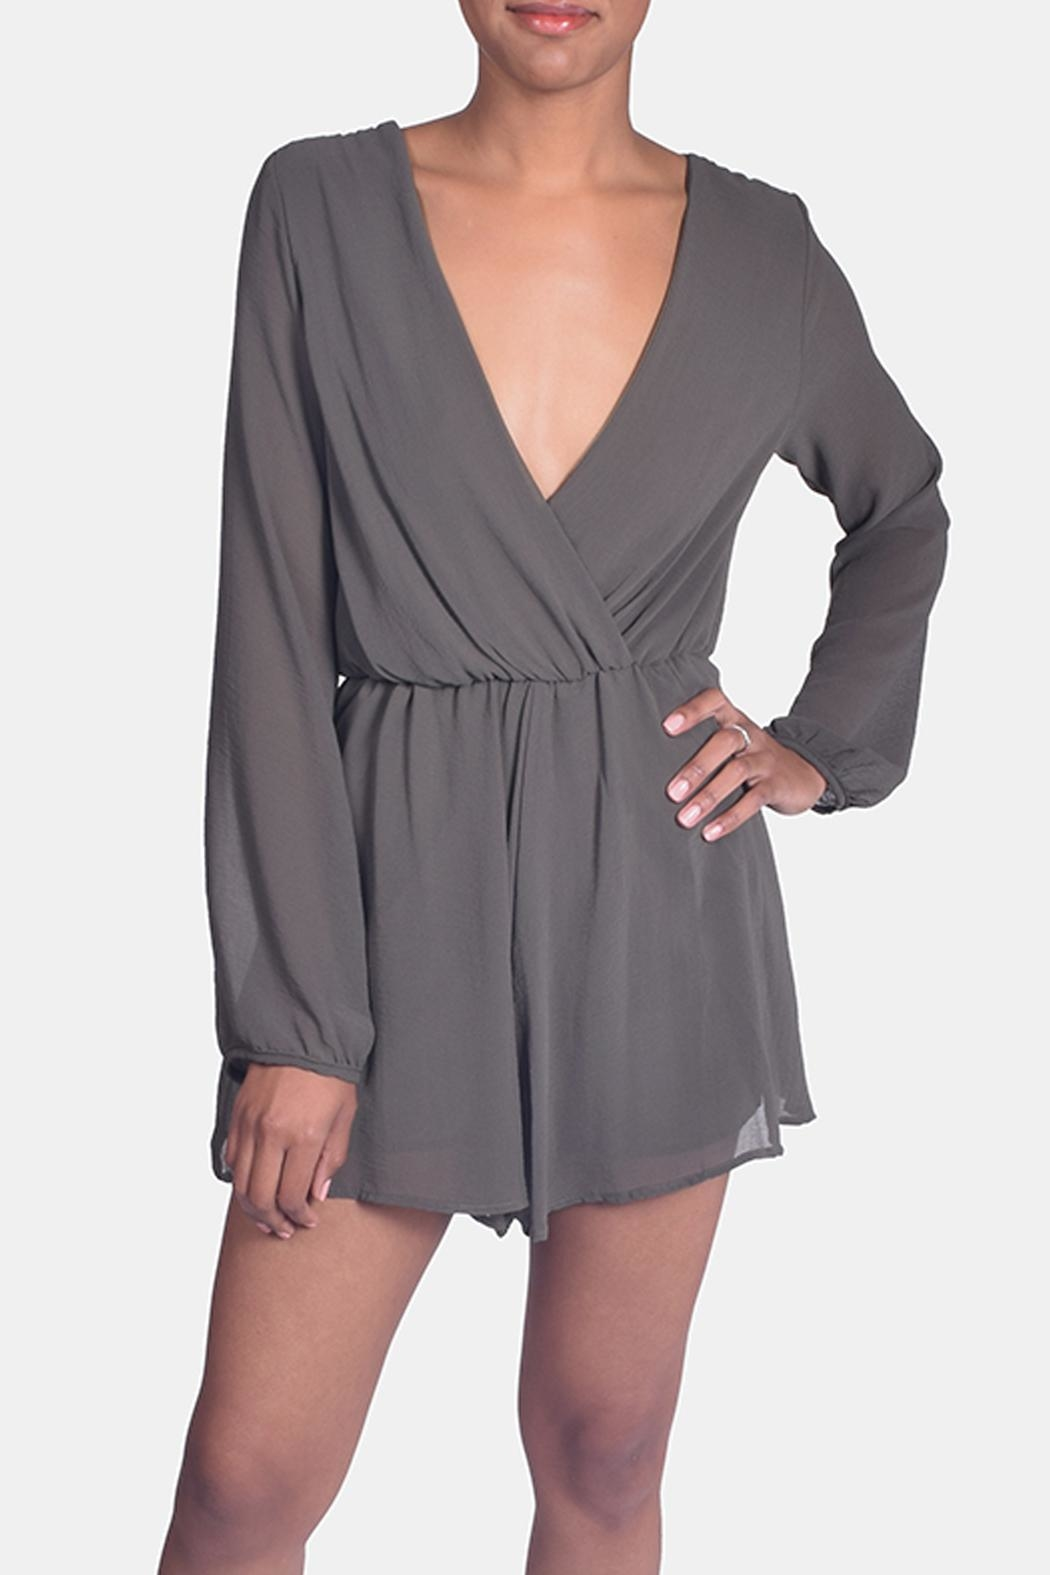 Final Touch Olive Chiffon Romper - Main Image